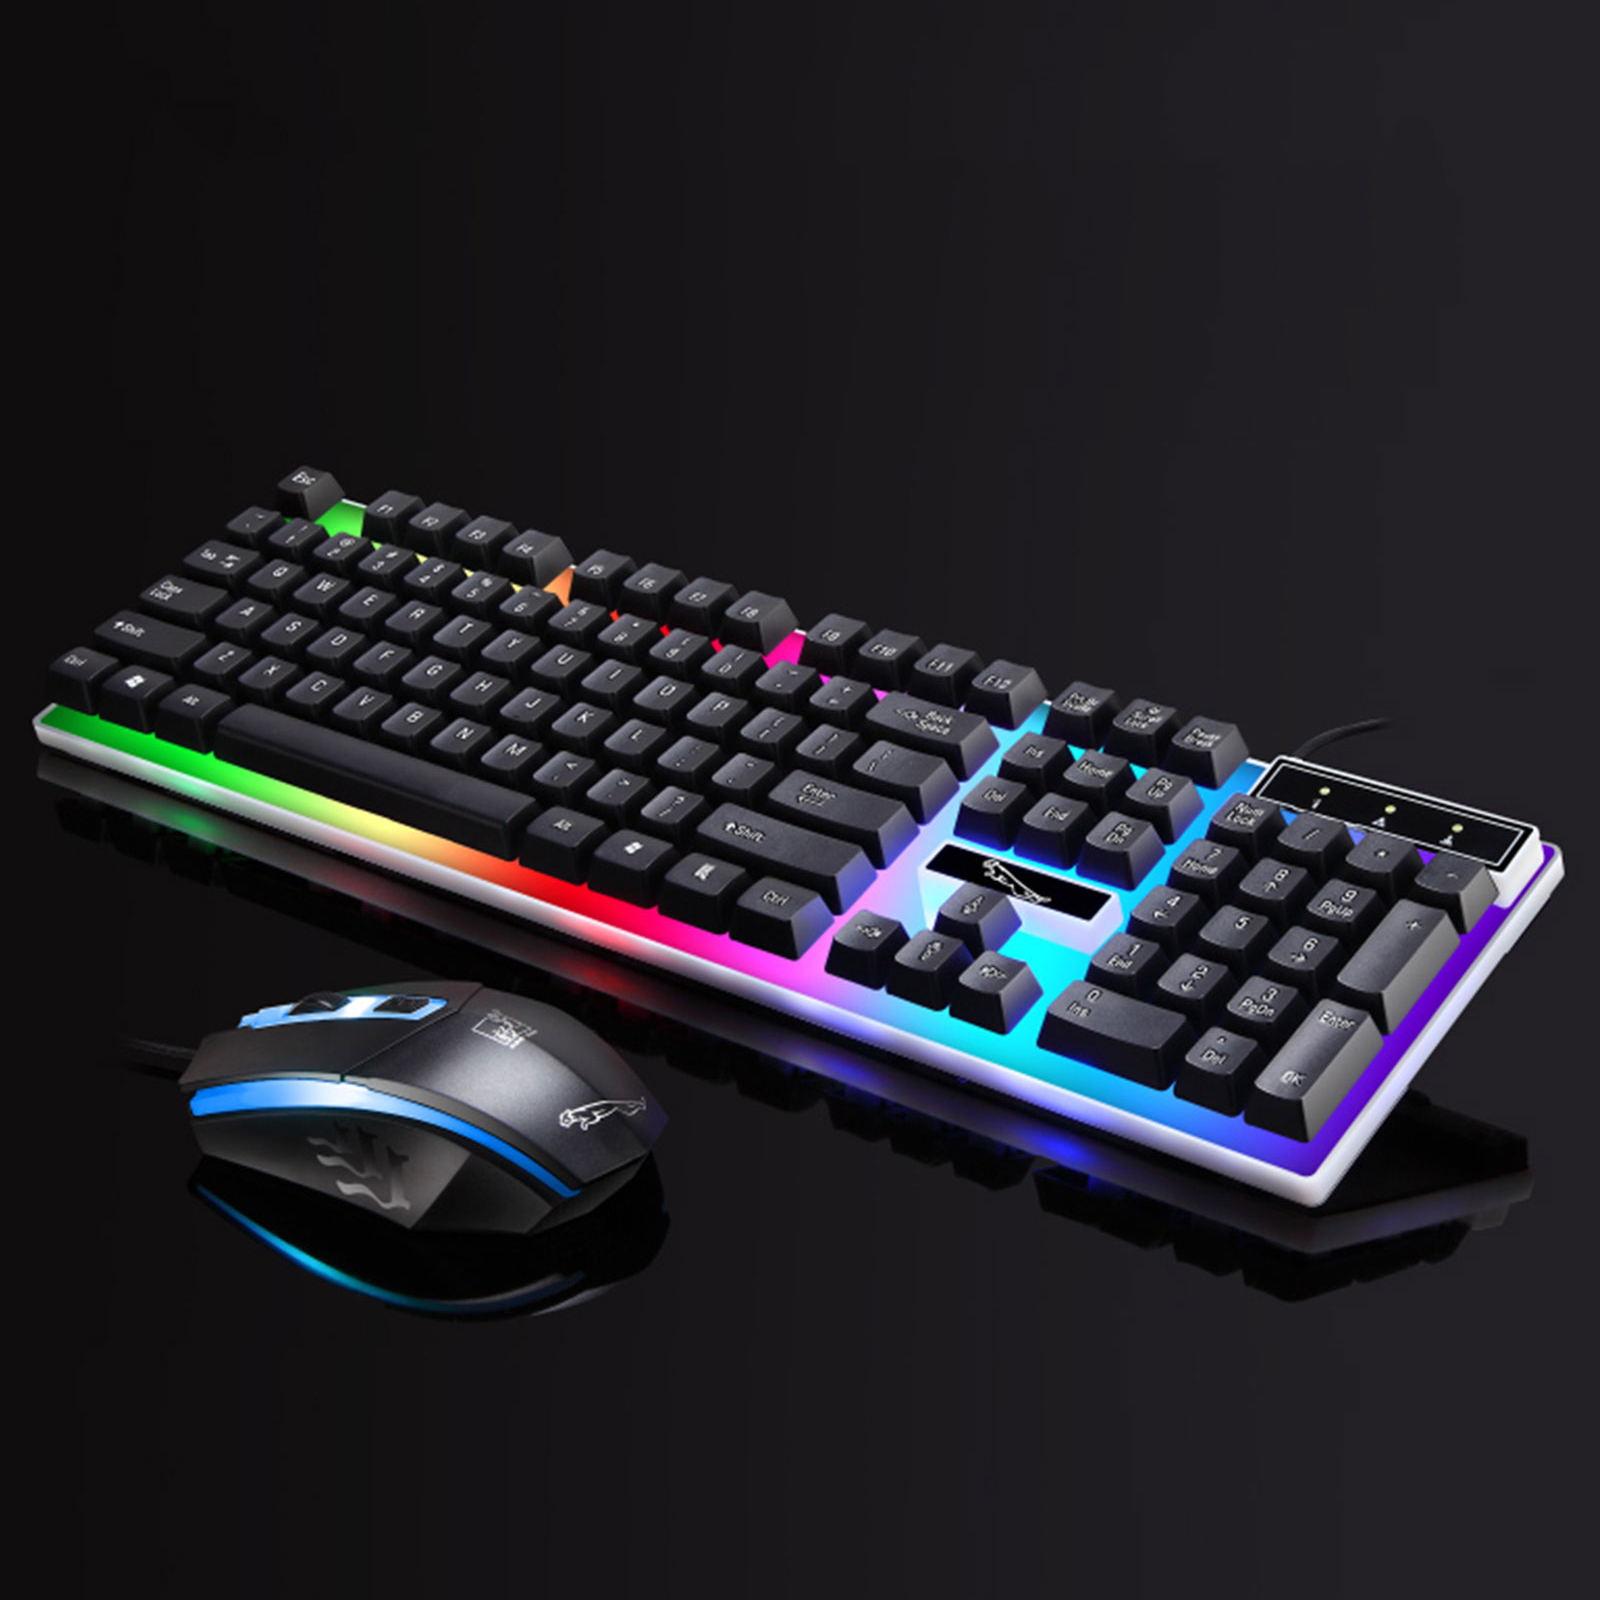 aa259d47b2b TSV Gaming LED Wired Keyboard and Mouse Combo with Emitting Character Usb  Mouse Multimedia Keys Rainbow Backlight Mechanical Feeling For Desktop  Computer, ...